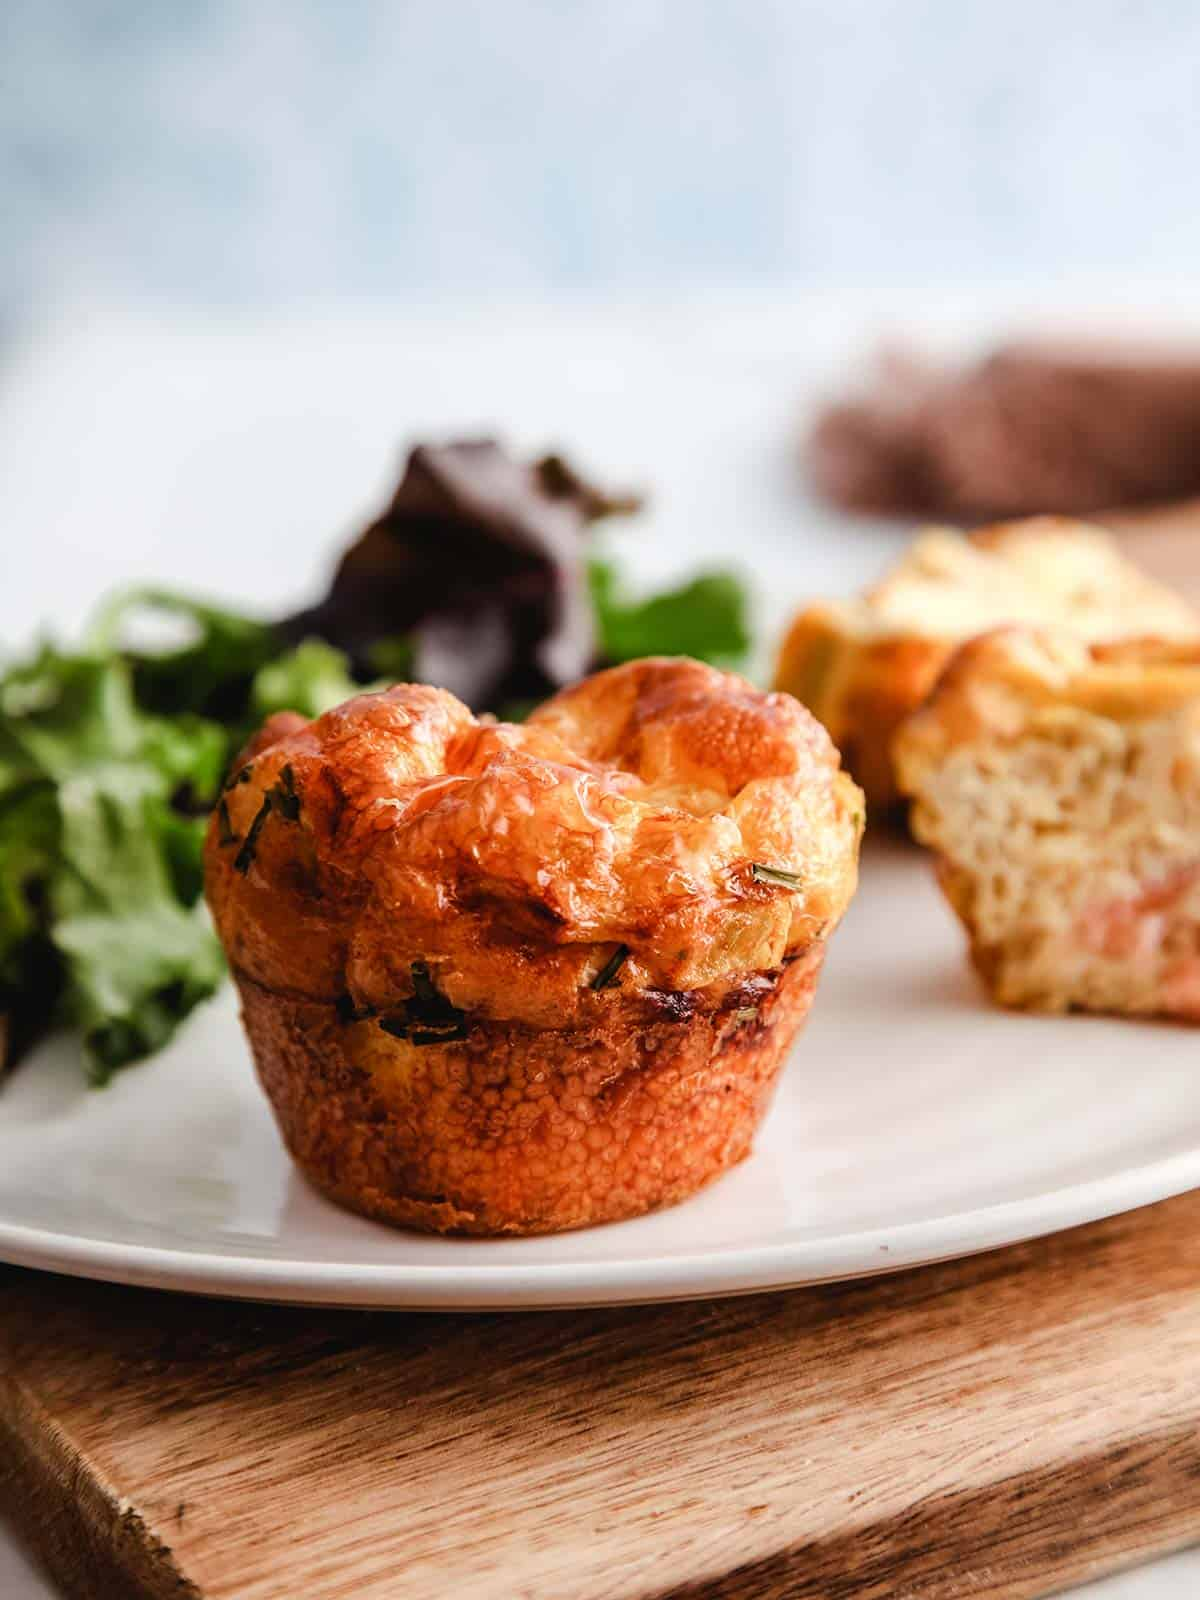 Breakfast muffins on a white plate on a wooden board.